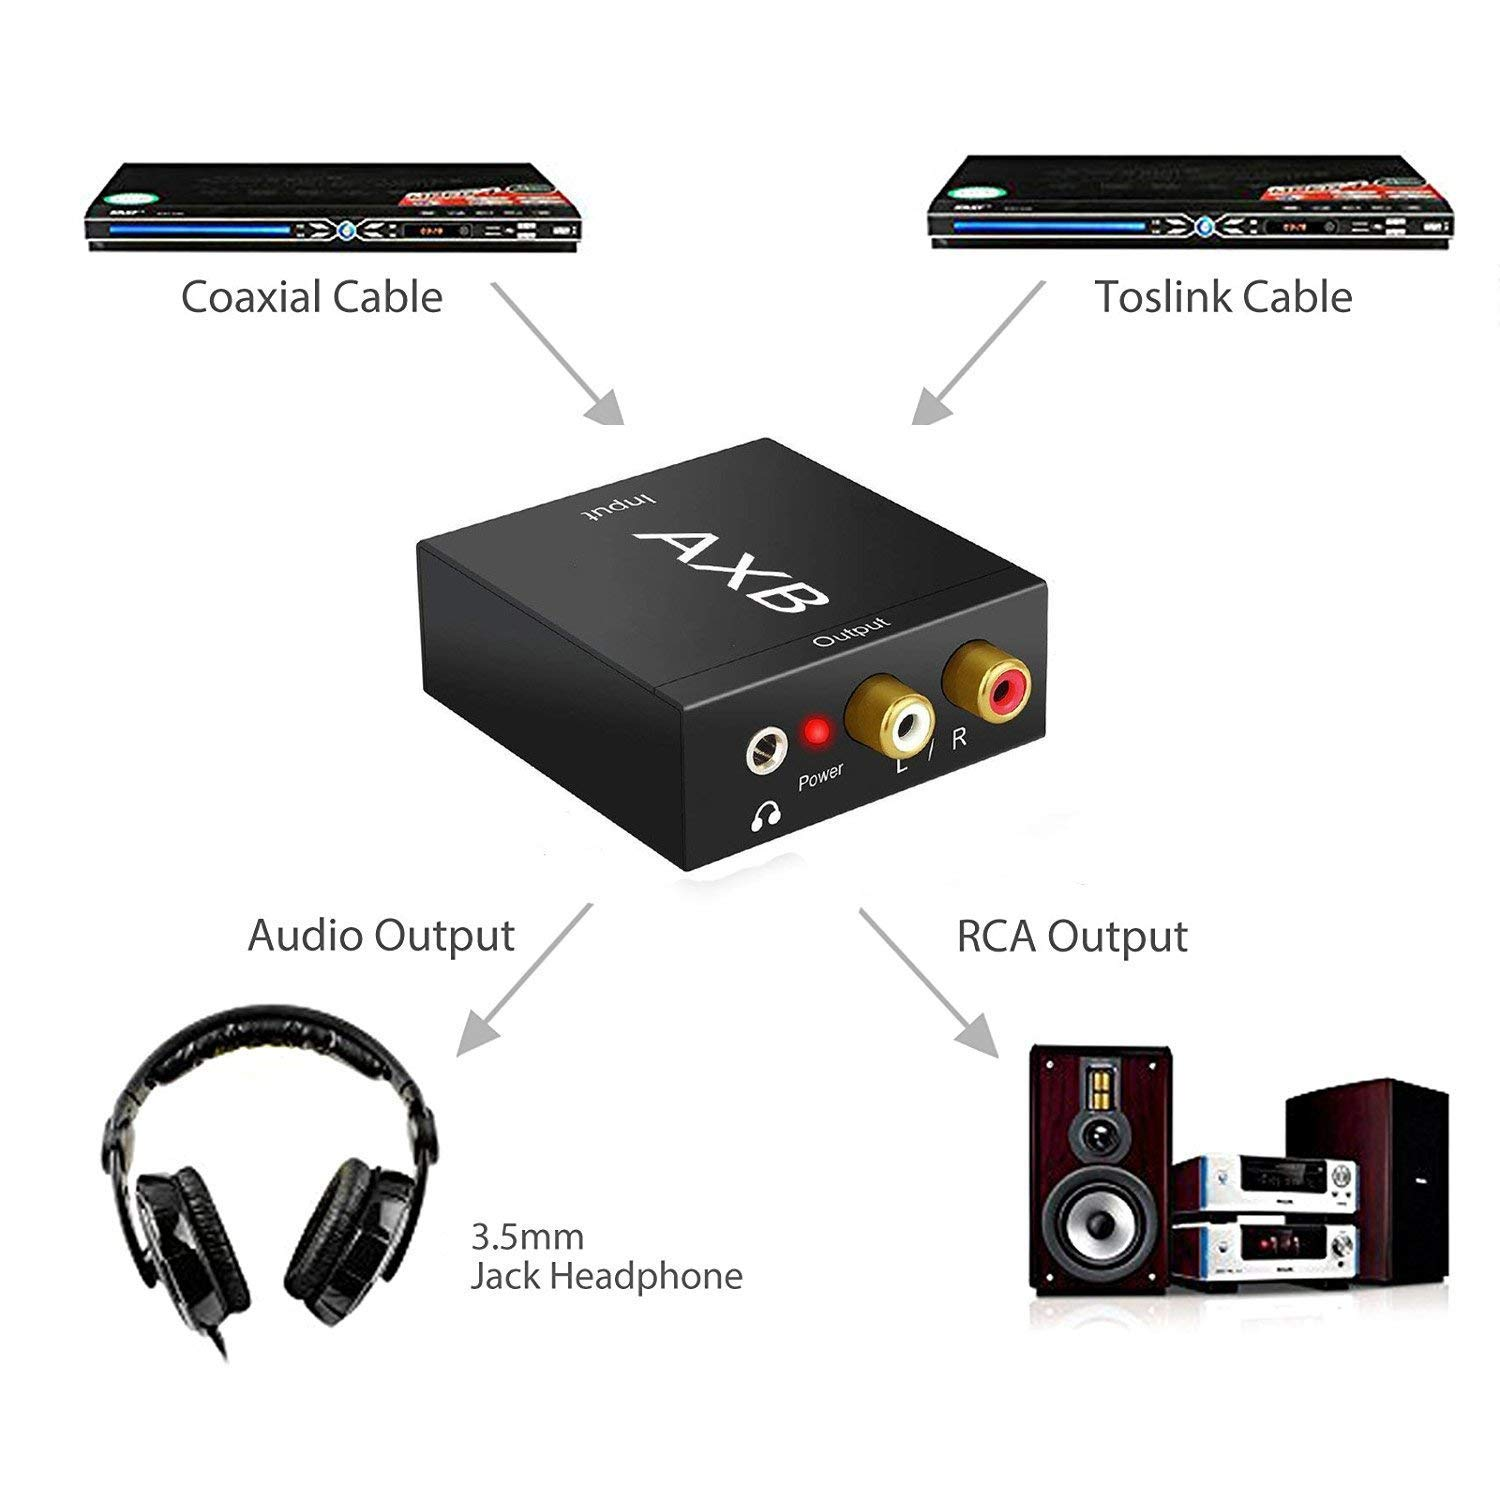 Amazon.com: AXB Digital to Analog Converter DAC with Fiber Cable Digital SPDIF Toslink to Analog Stereo Audio L/R Converter Adapter with Optical Cable: ...